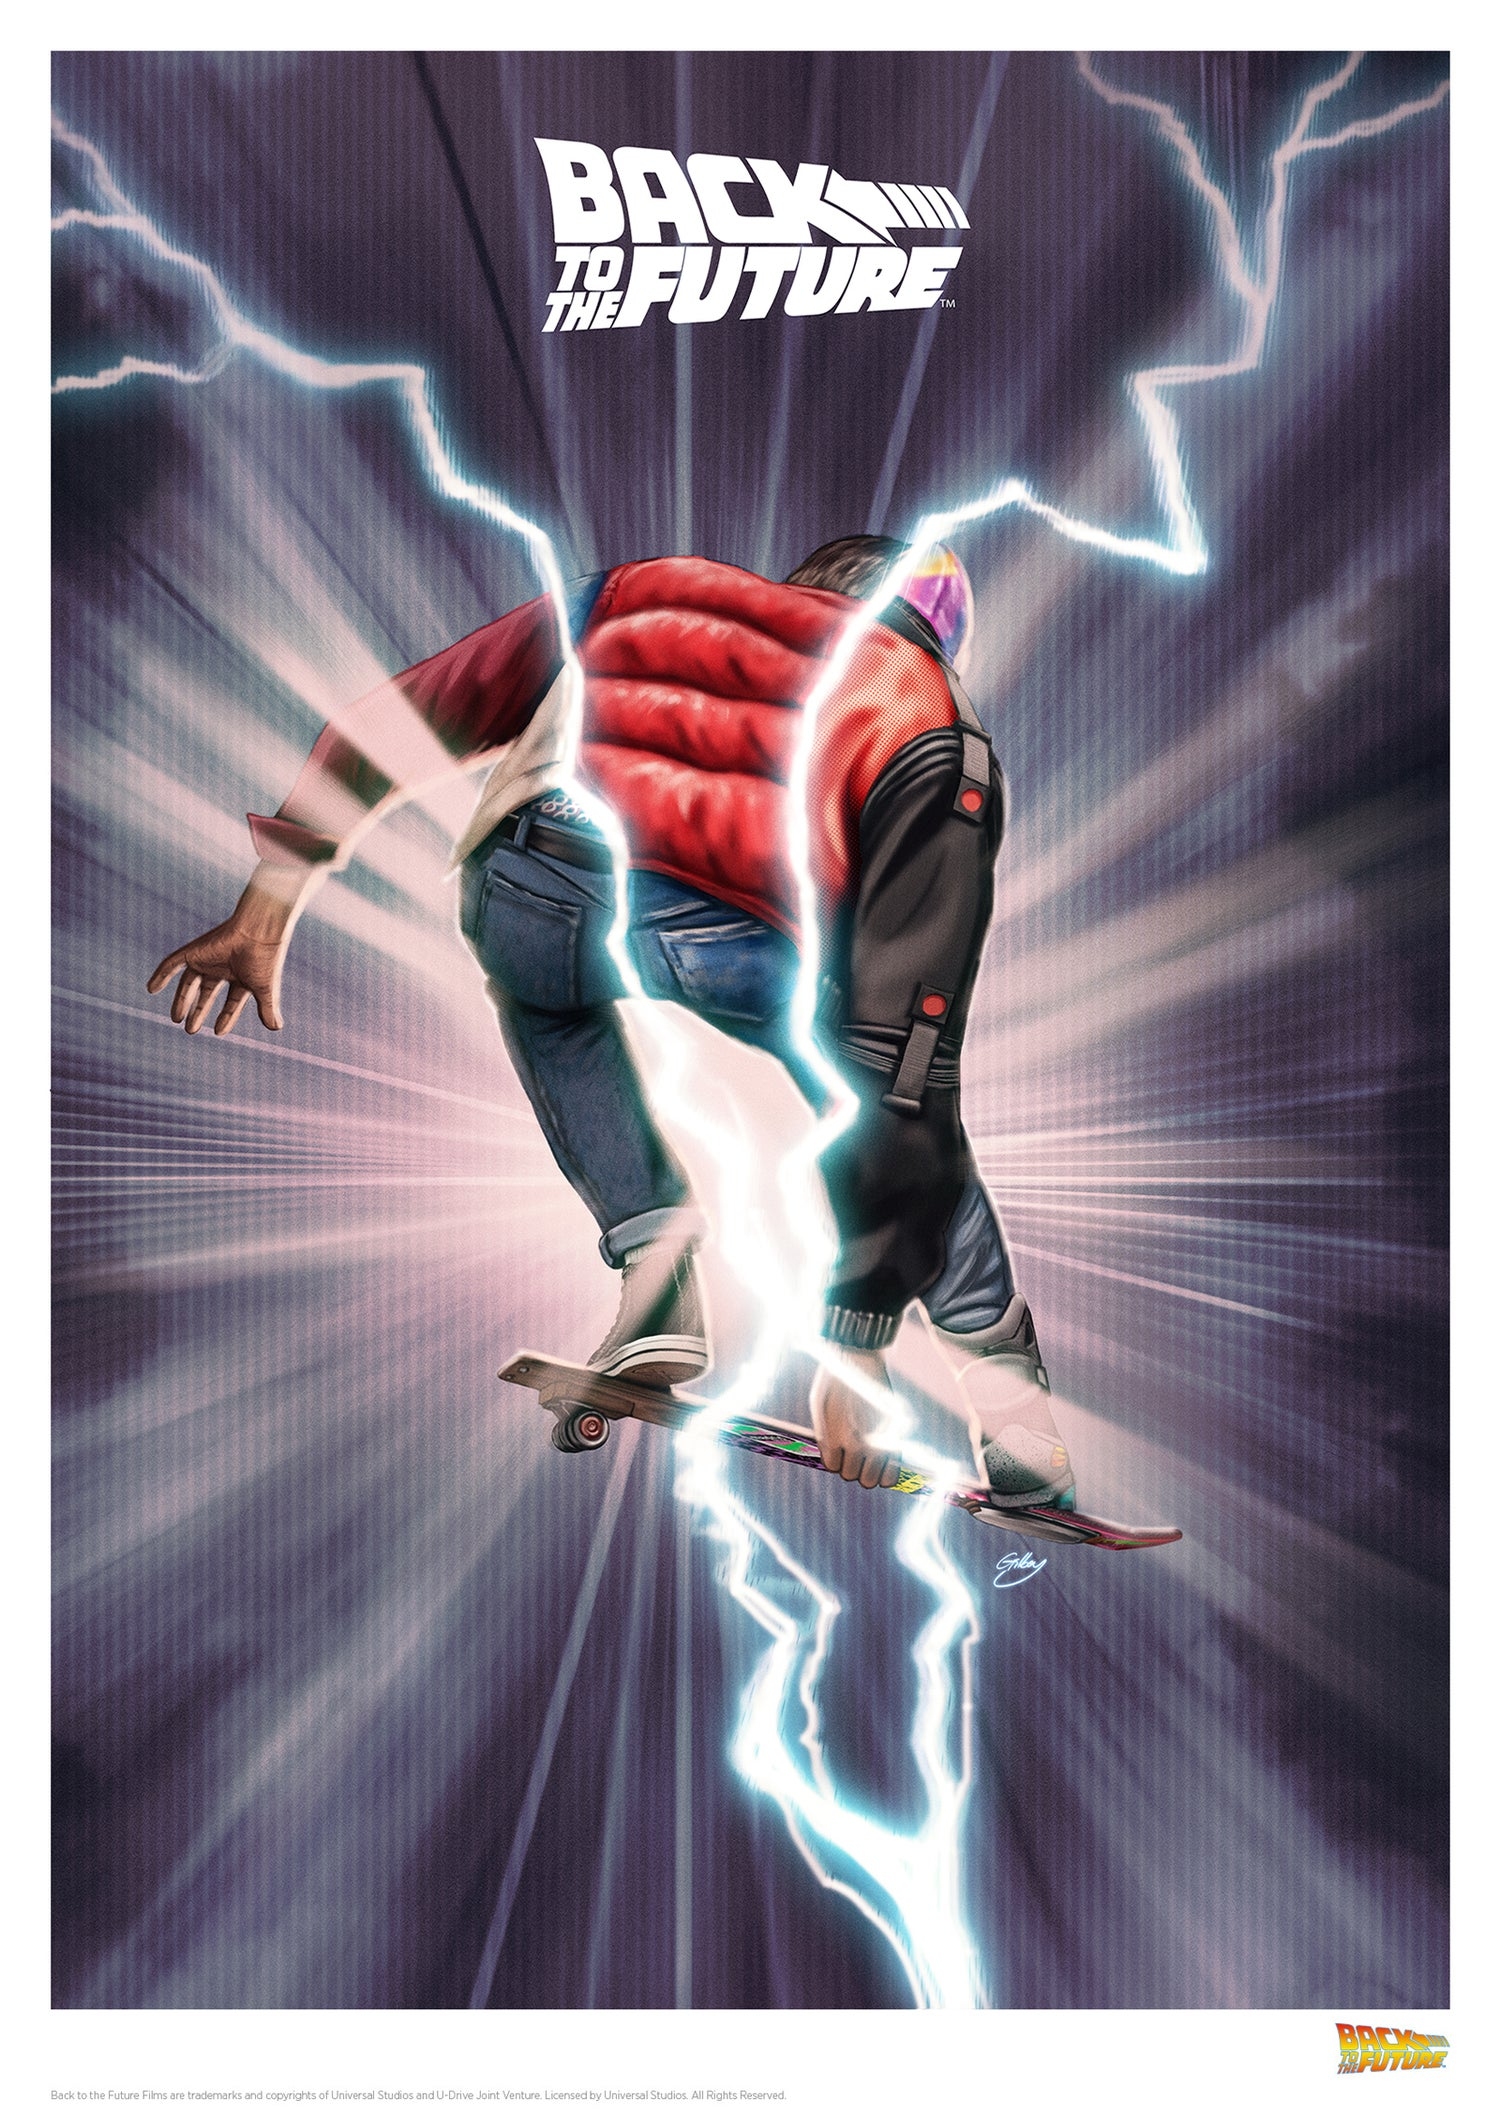 Image of Back to the Future boarding A3 (officially licensed print)